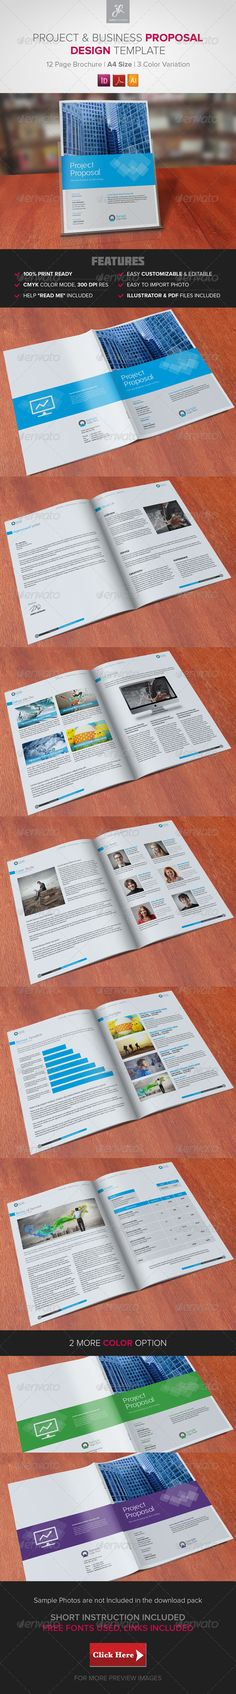 Proposal Template Proposal templates, Brochures and Invoice layout - business proposals samples